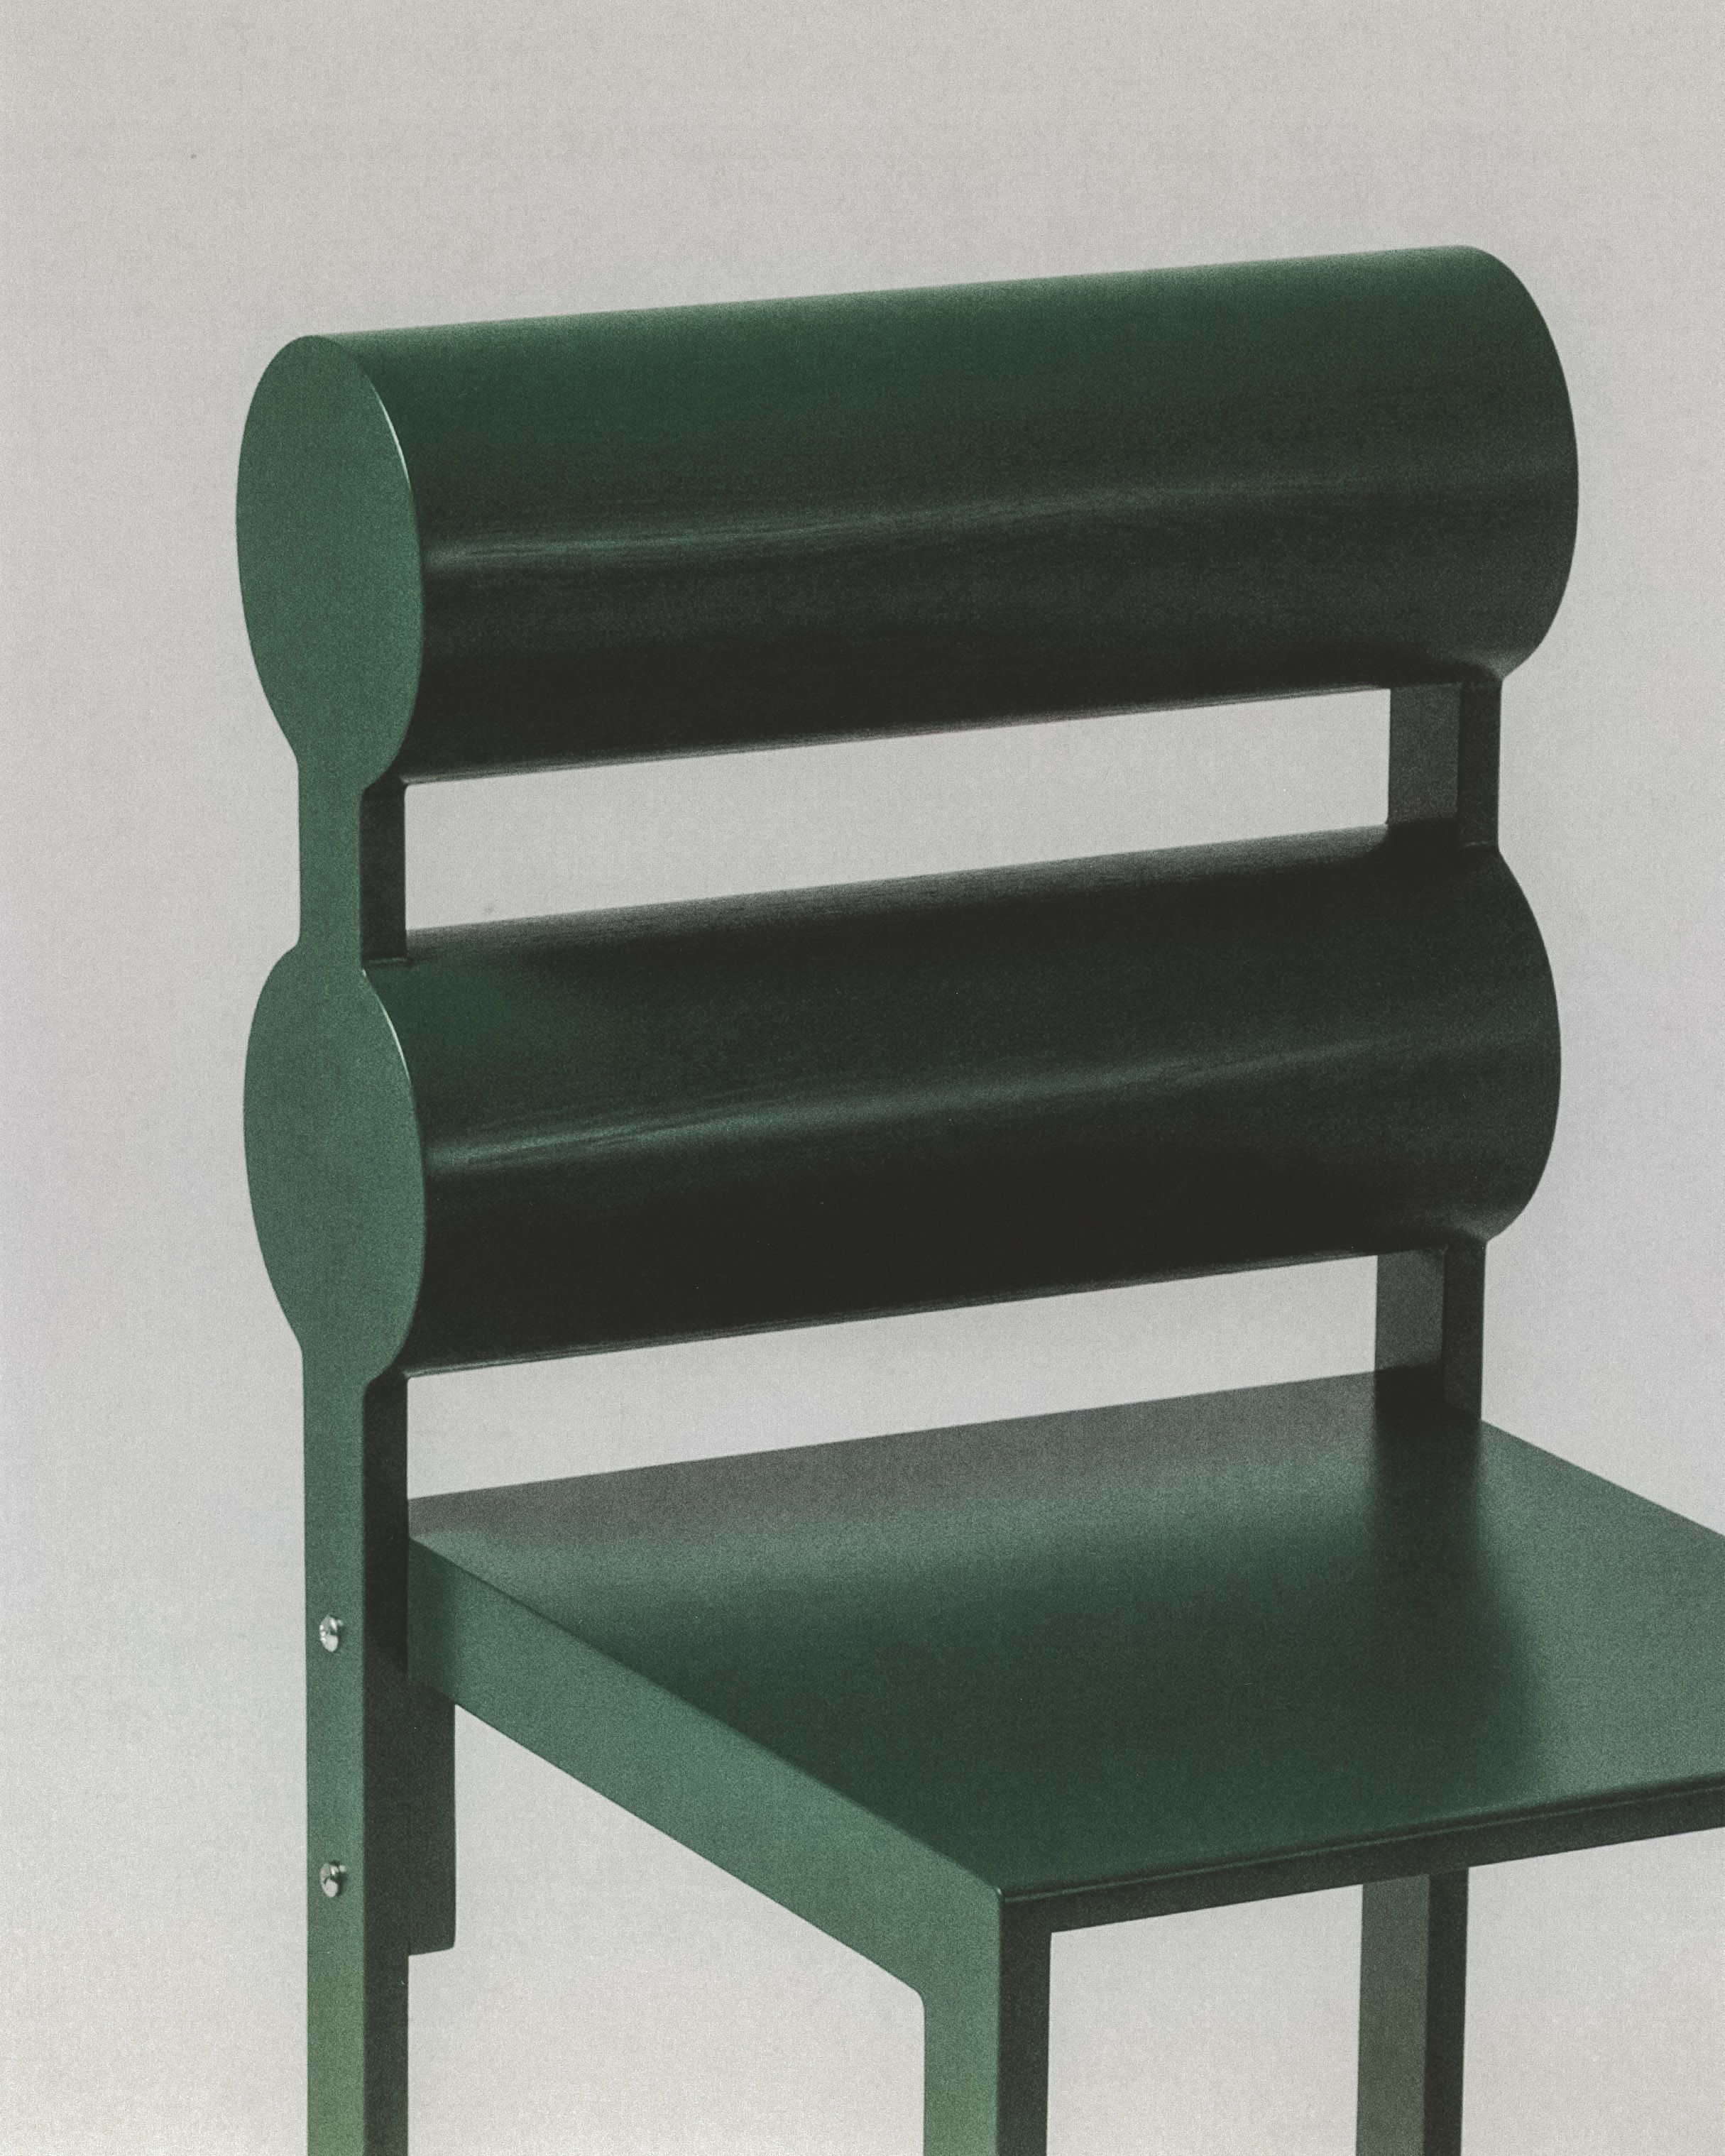 Green Double Cylinder Back product image 0